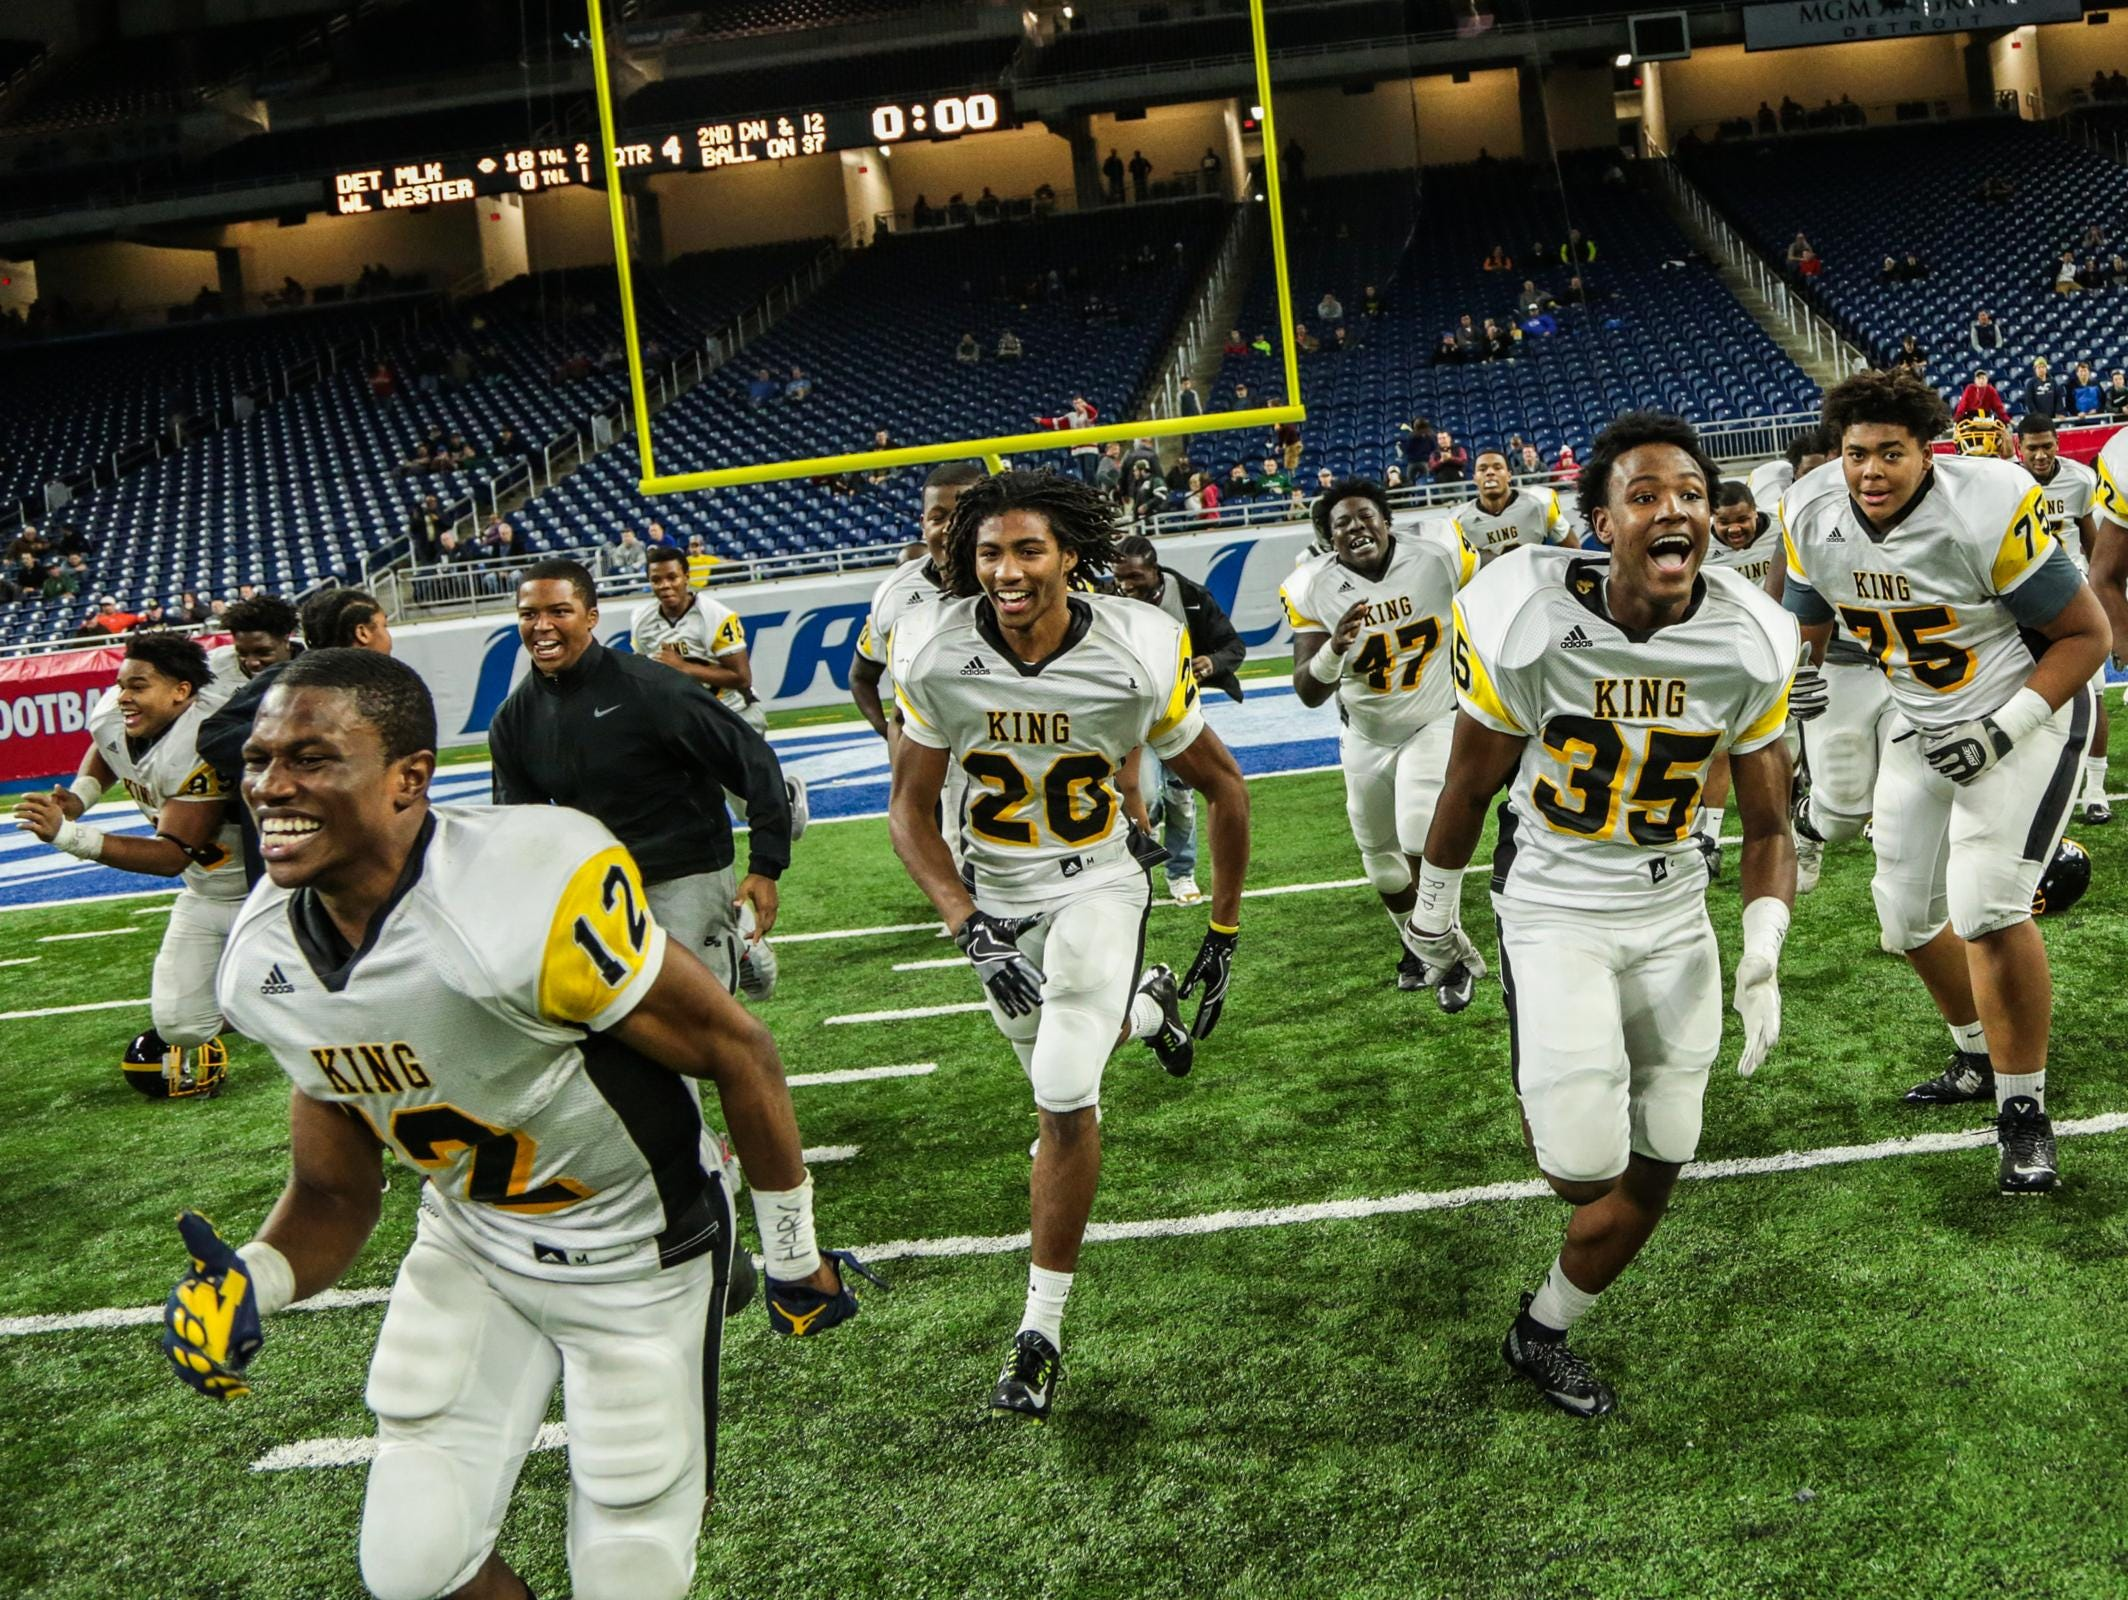 King defensive back Jesse Scarber, No. 12 celebrates with his teammates after winning the title against Walled Lake Western during Division 2 High School Championship game on Thursday November 24, 2016, at Ford Field in Detroit, MI.